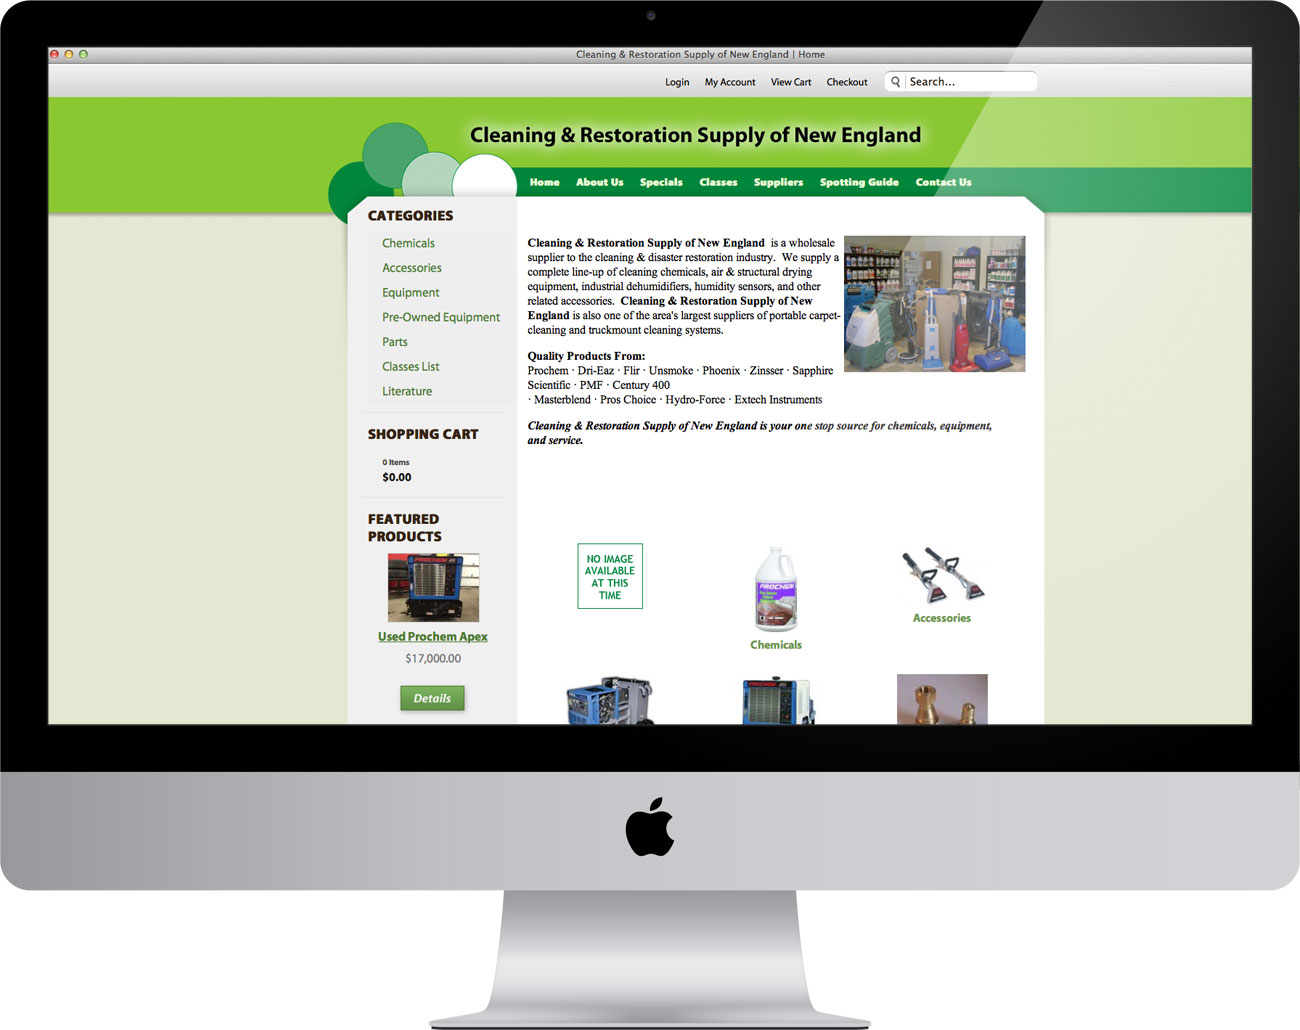 Particular Have To Have An Online Shopping Mejia Restoration Supply Cleaning New England Lw Group Cleaning Restoration Supply Supply New England Middletown Ri Supply New England Allston houzz-02 Supply New England